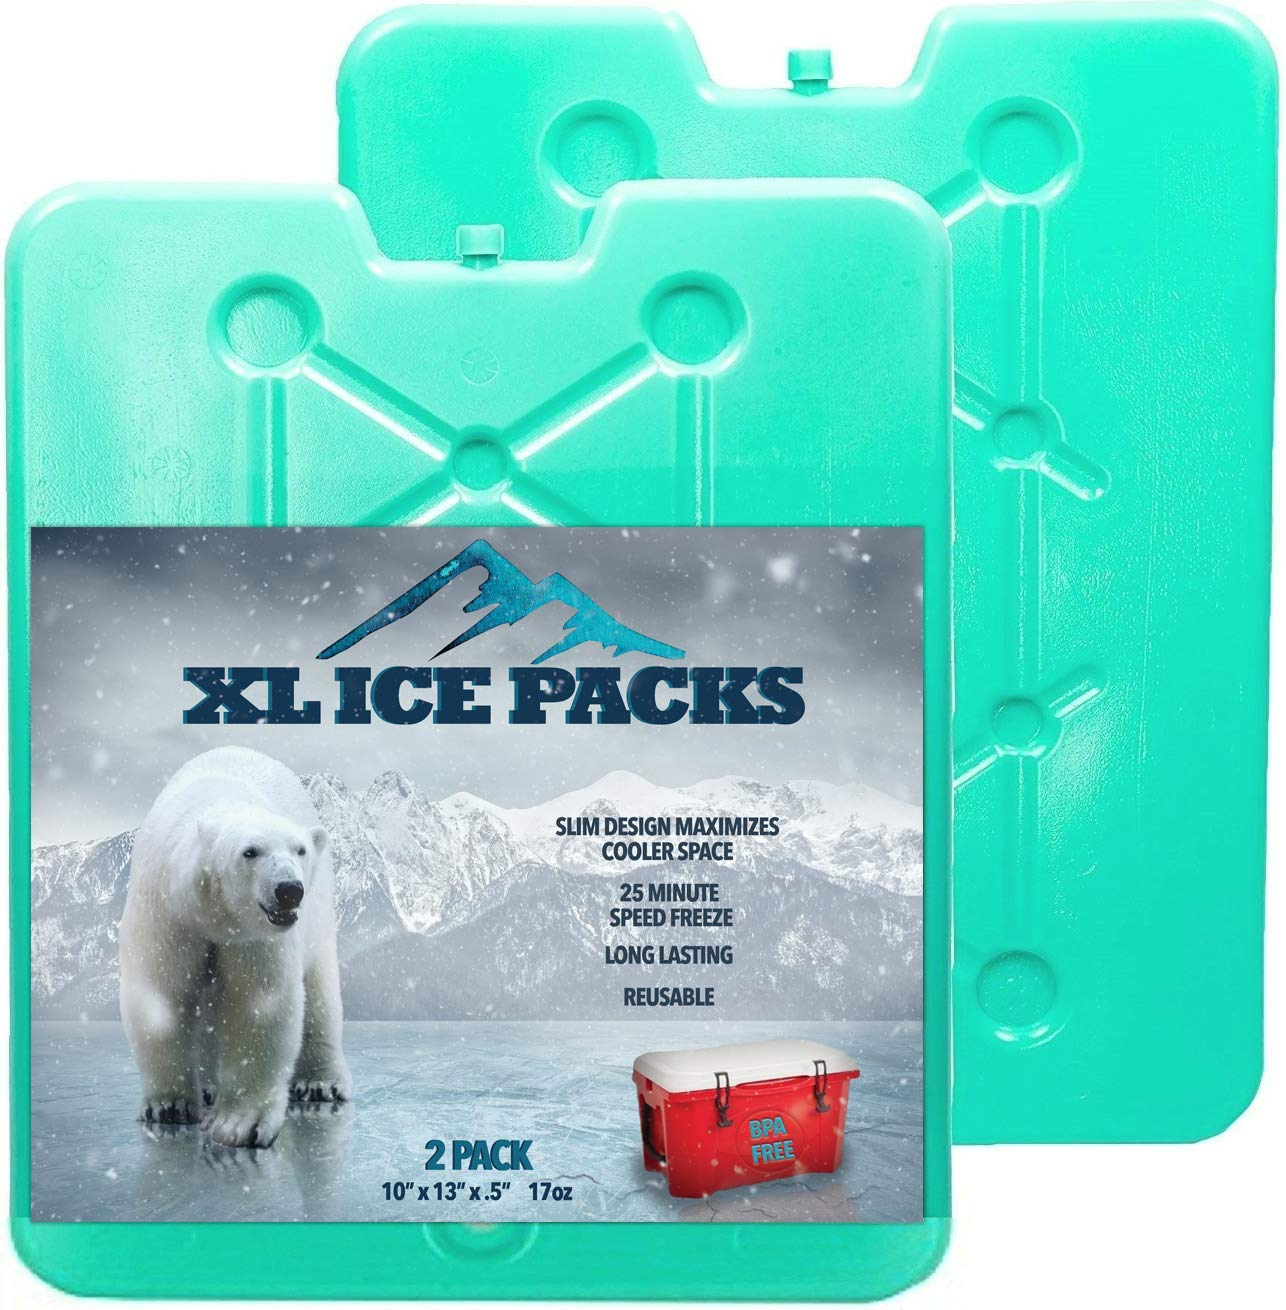 Large Ice Packs For Coolers and Ice Chest by Portion/Perfect - 20 Minute Quick Freeze Long Lasting Freezer Packs - Slim, Sealed and Reusable Ice Substitute 13 x 10 inch - Set of 2 by Portion Perfect